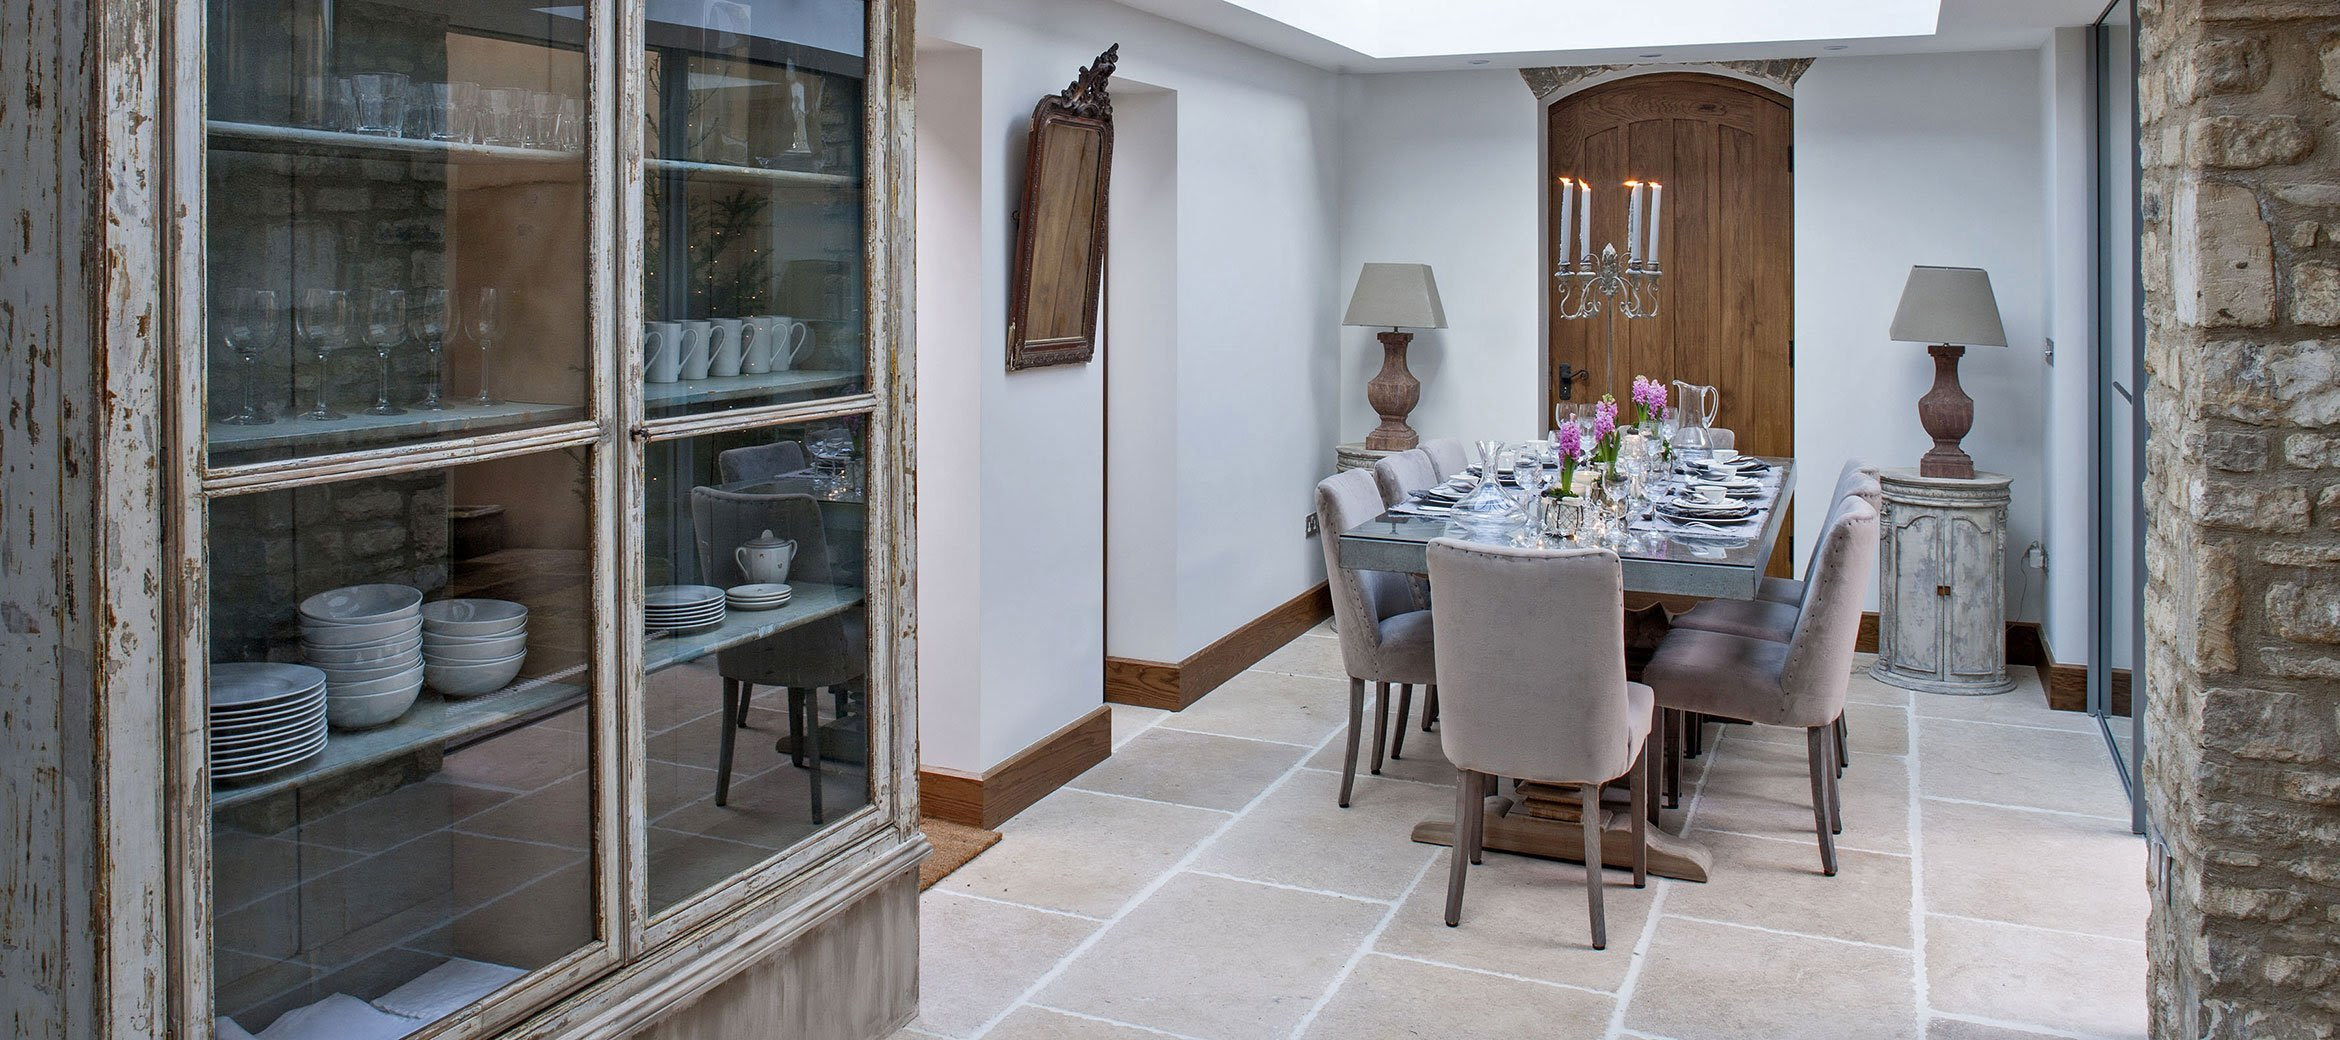 Stunning Cotswold Cottage Dining Room Full Home Tour over on Modern Country Style